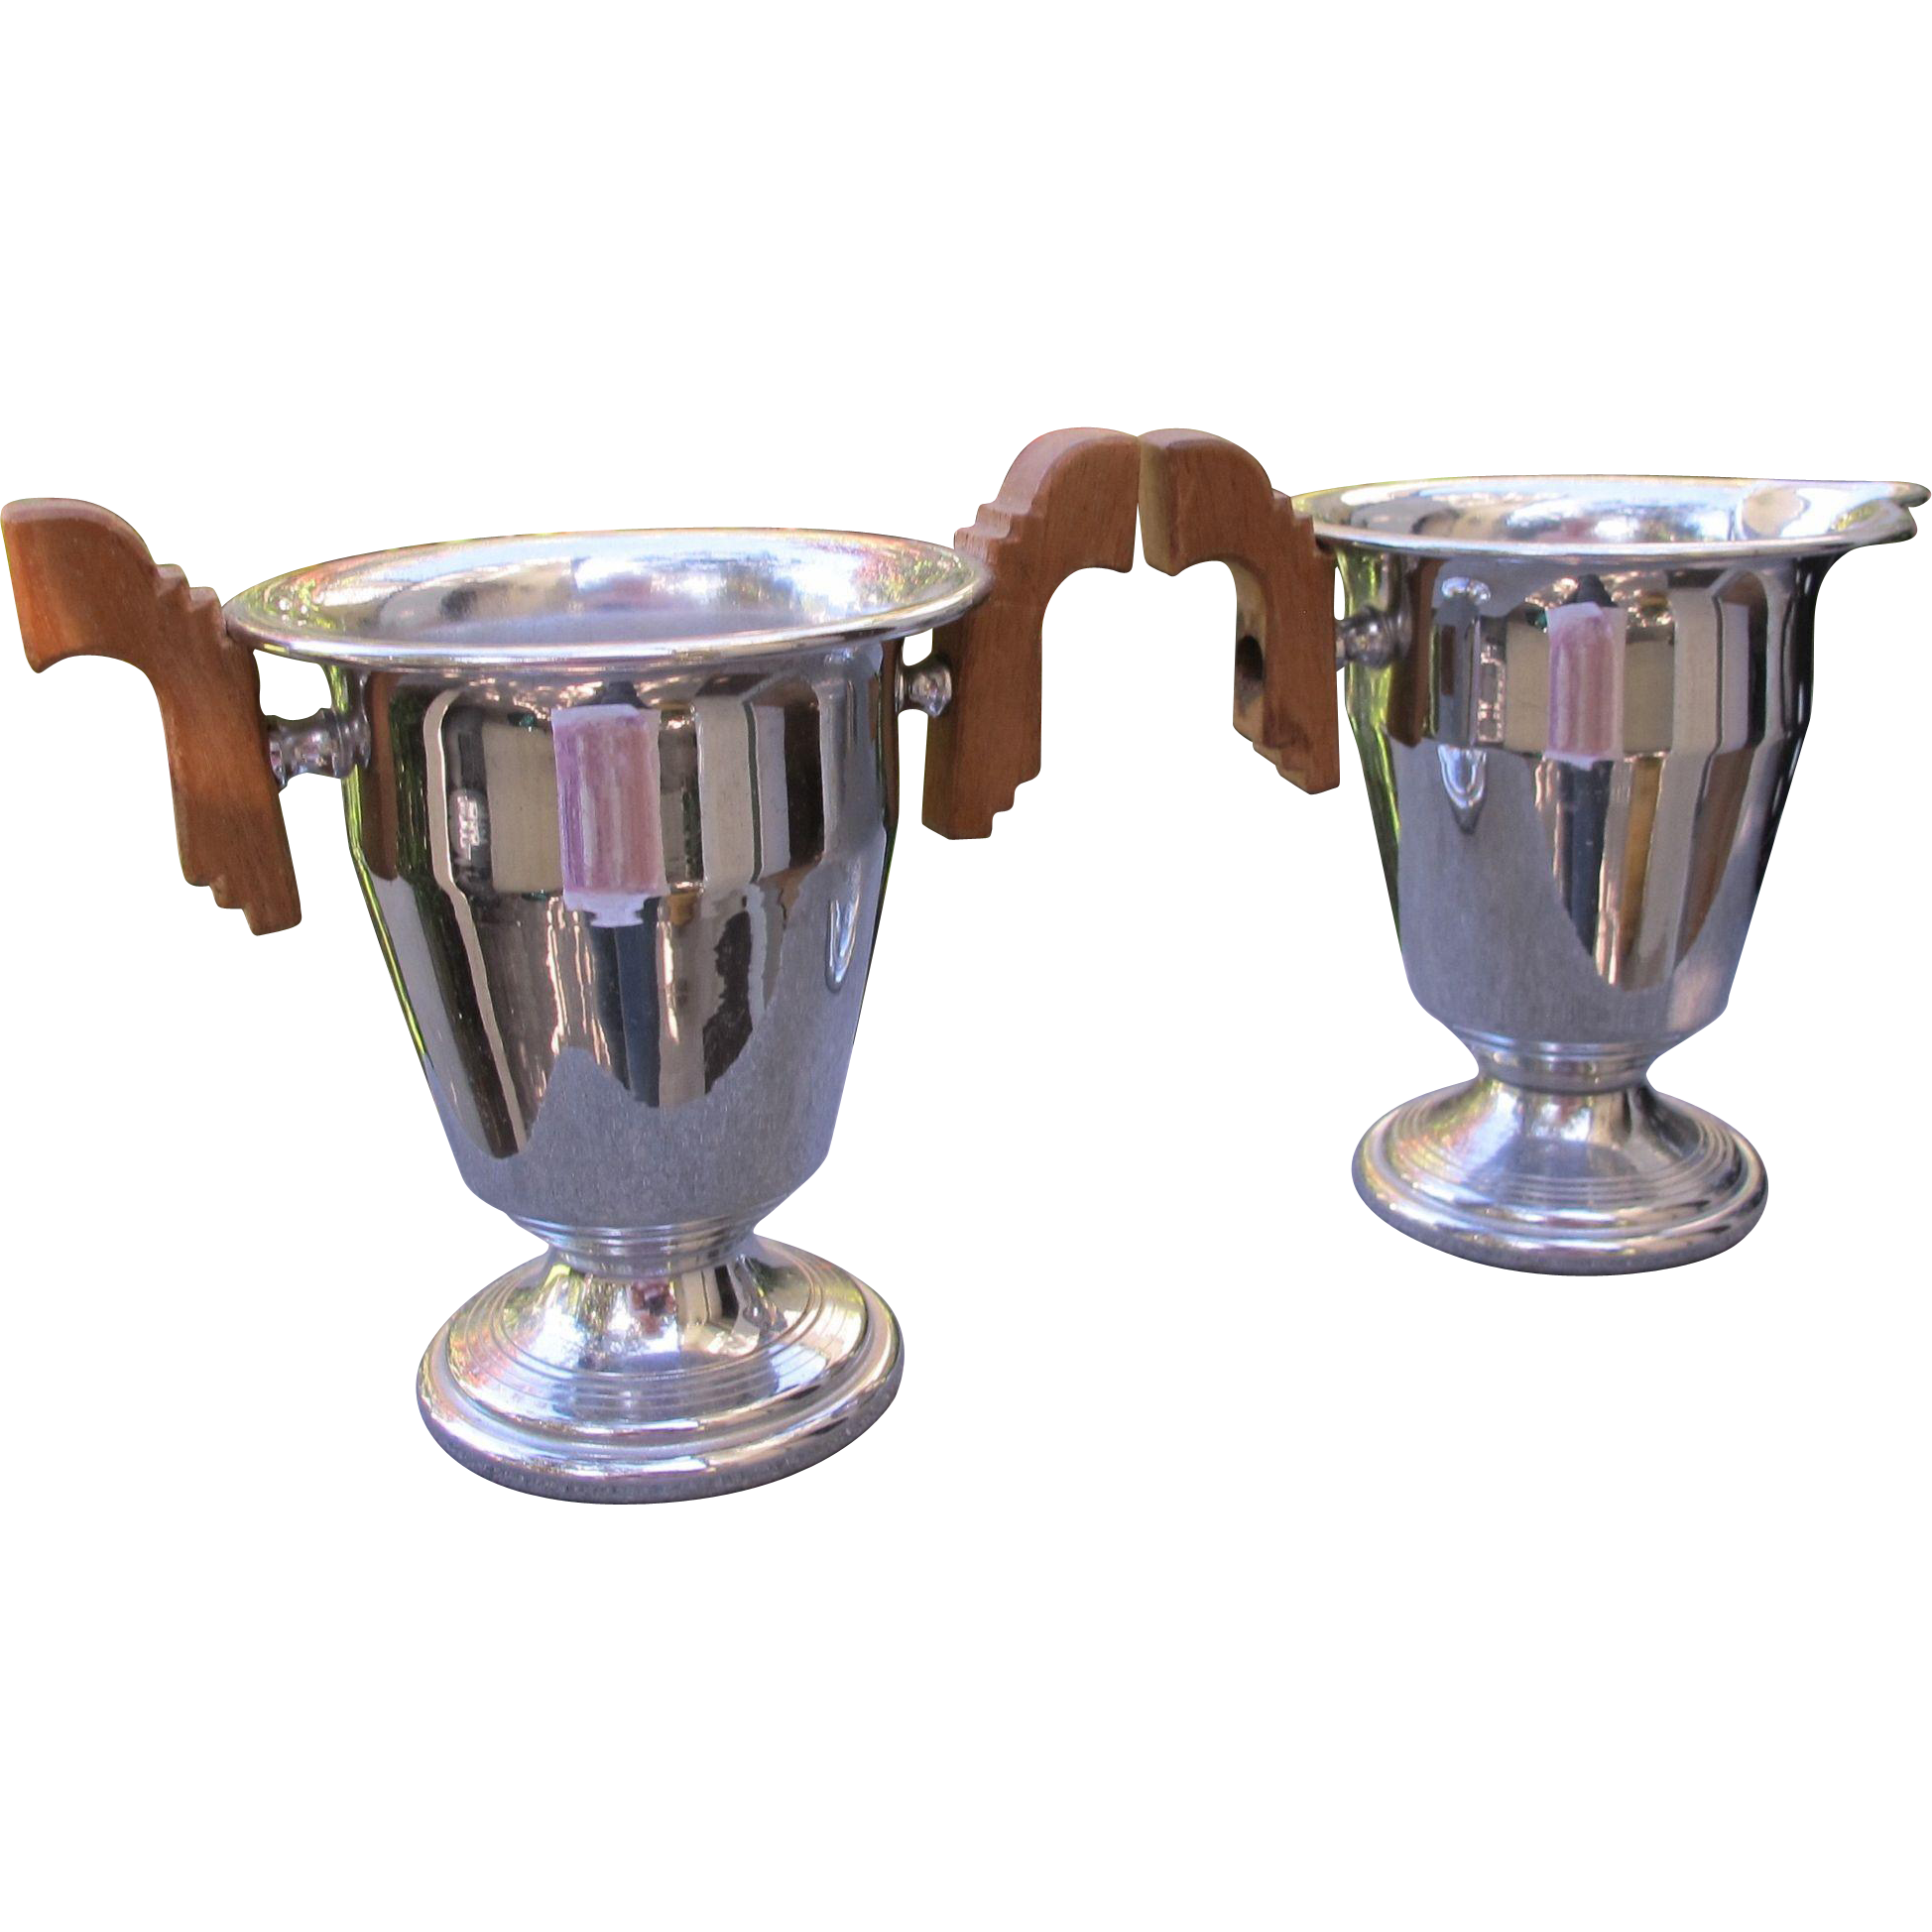 Art Deco Creamer and Sugar Set in Chrome with Wood Handles